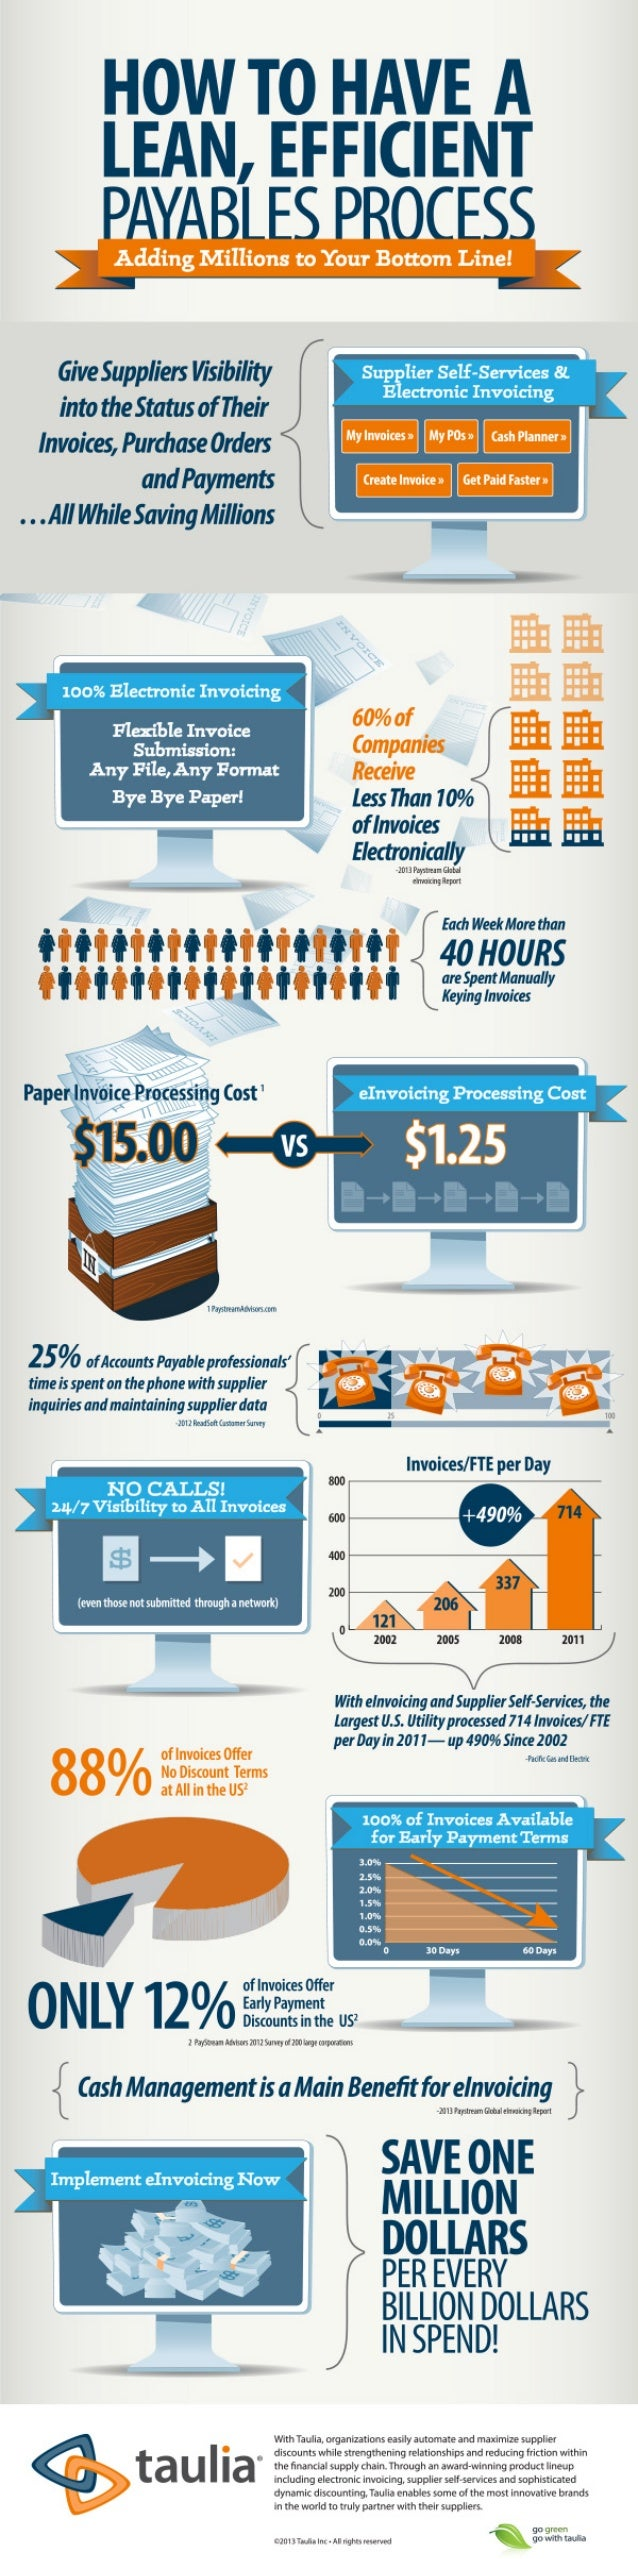 Infographic: How to Have A Lean, Efficient Payables Process